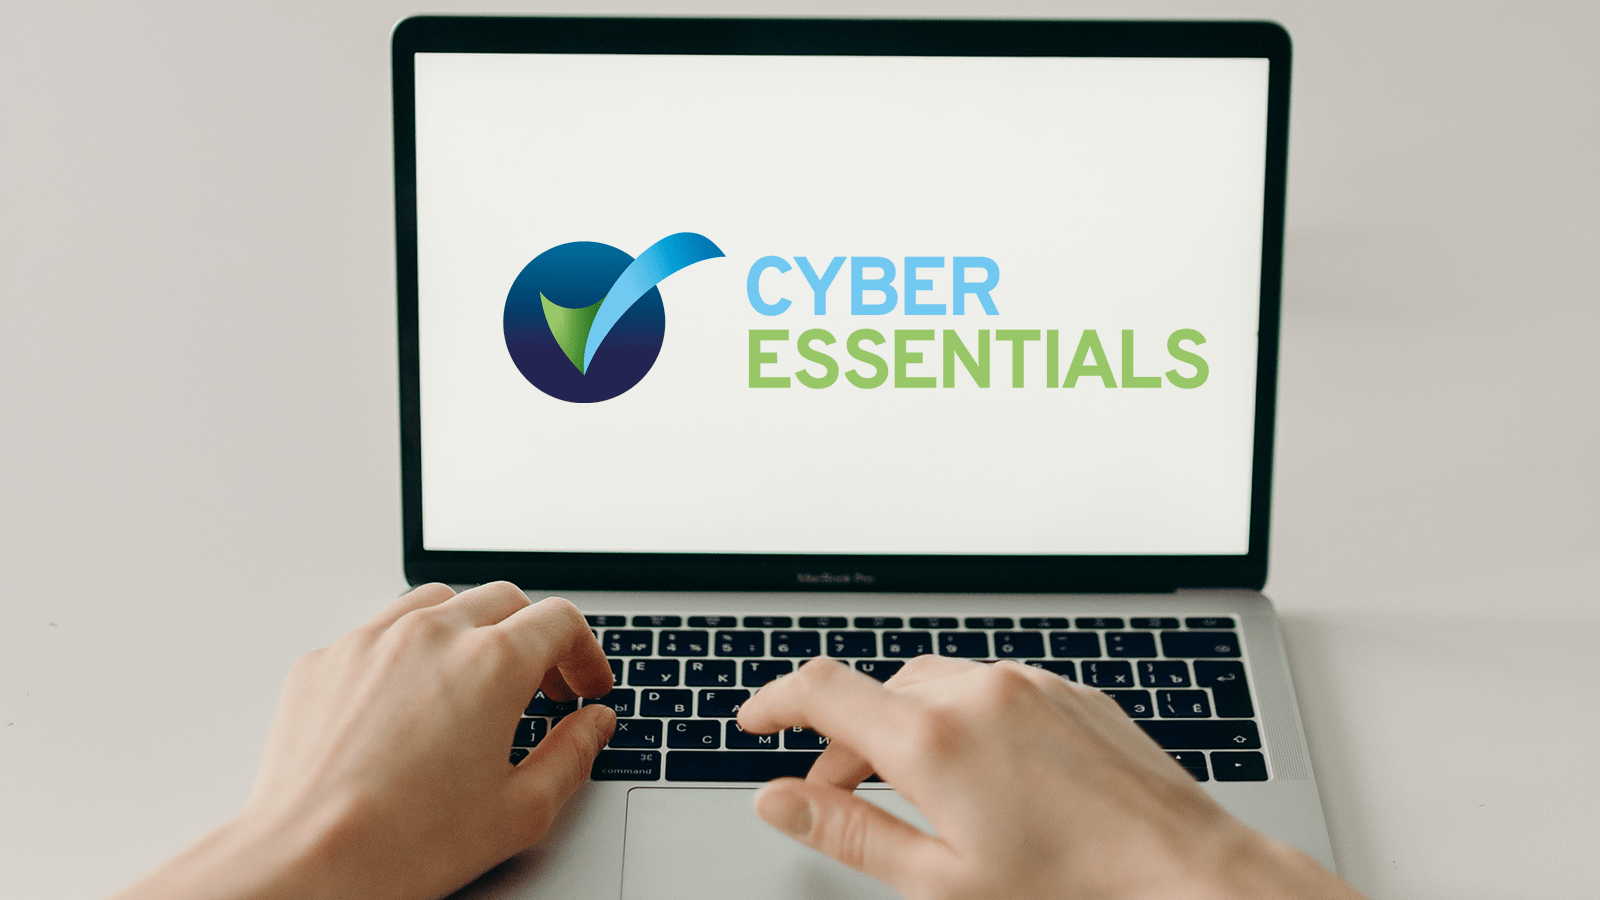 How ready are you for a Cyber Essentials assessment?